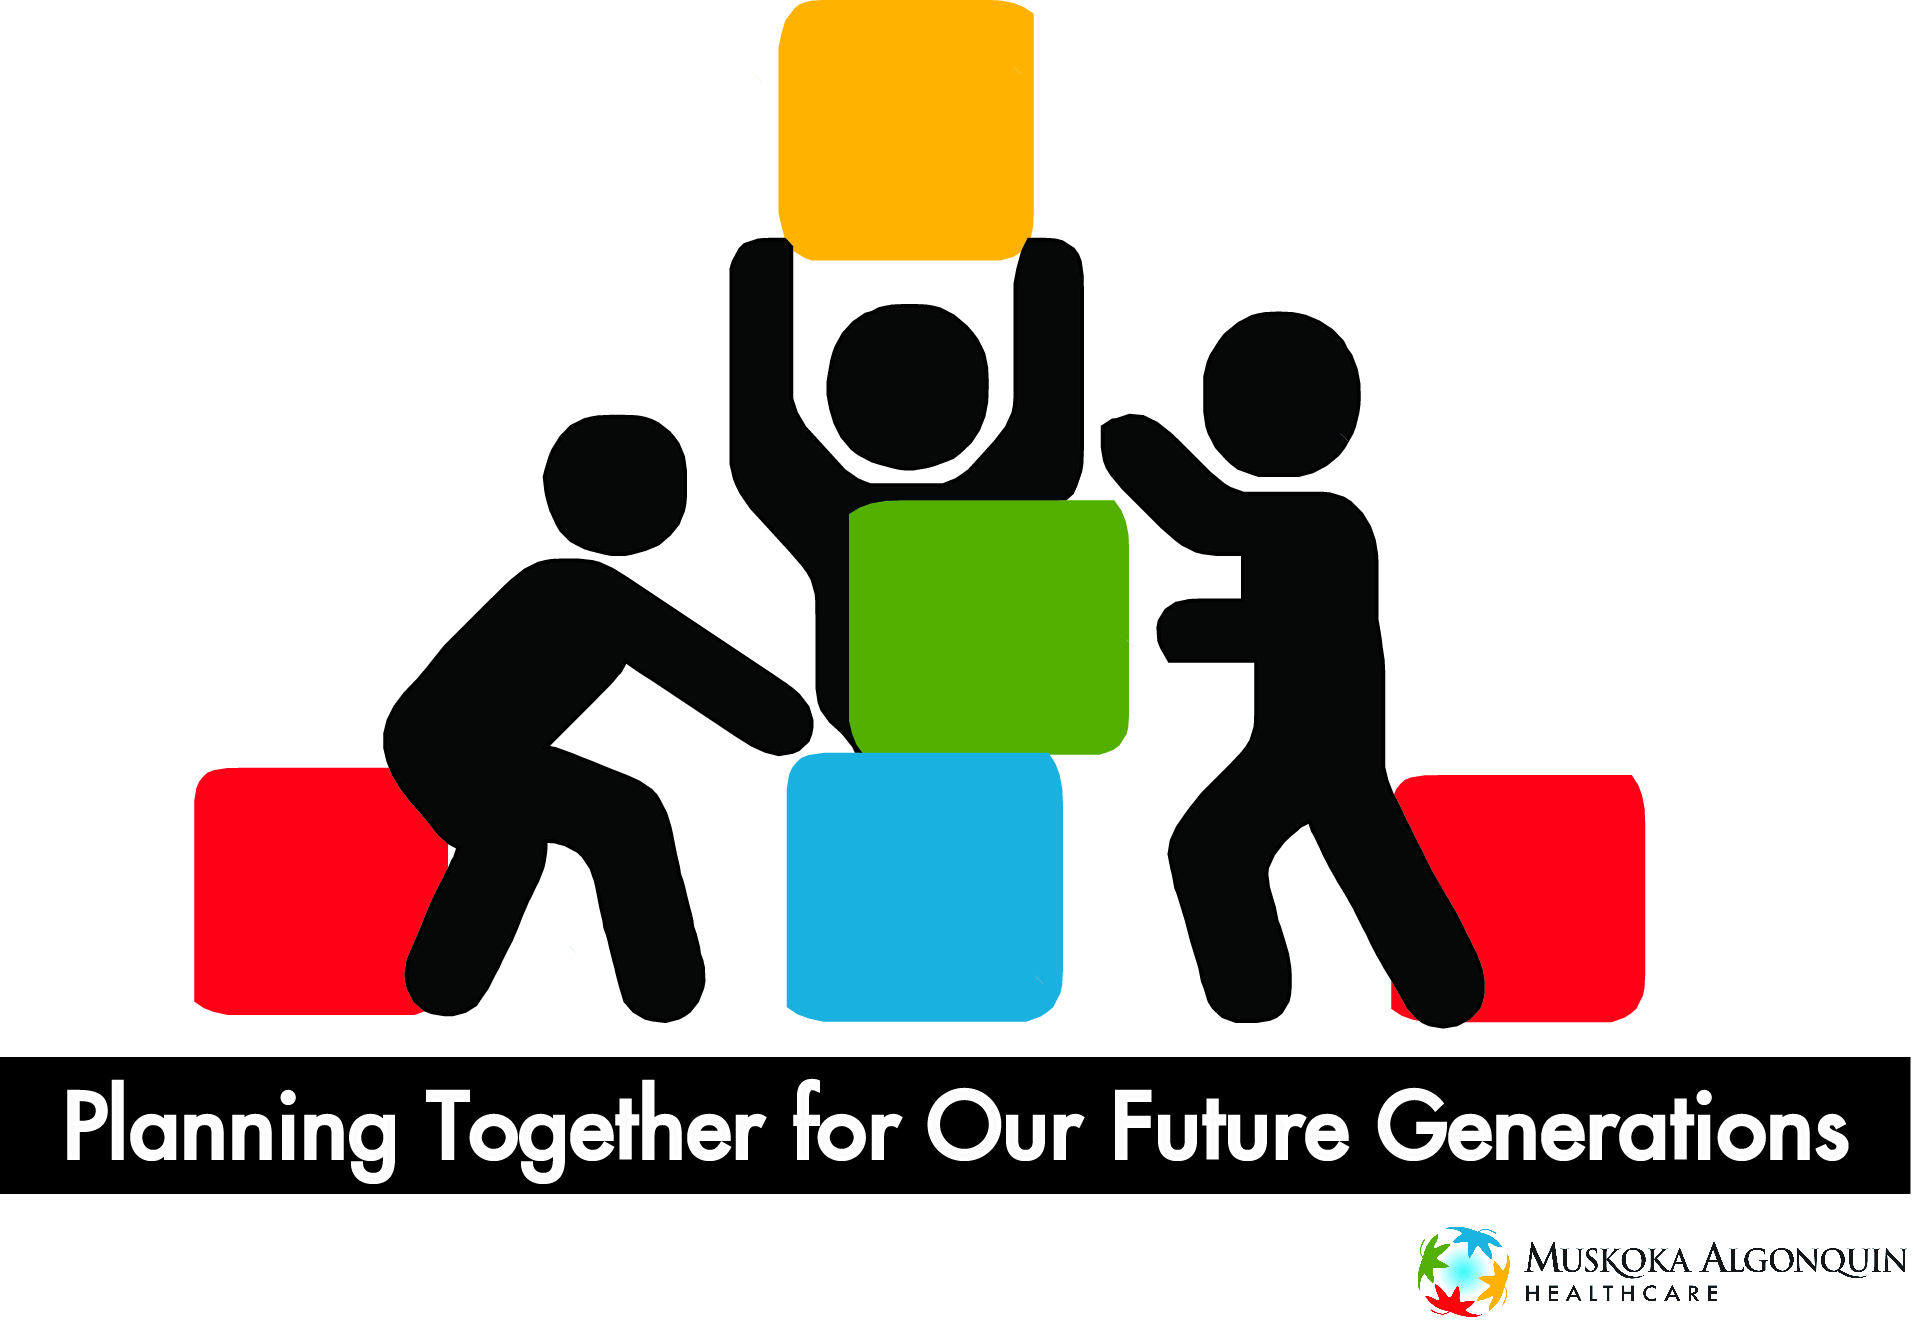 Planning Together for Our Future Generations logo